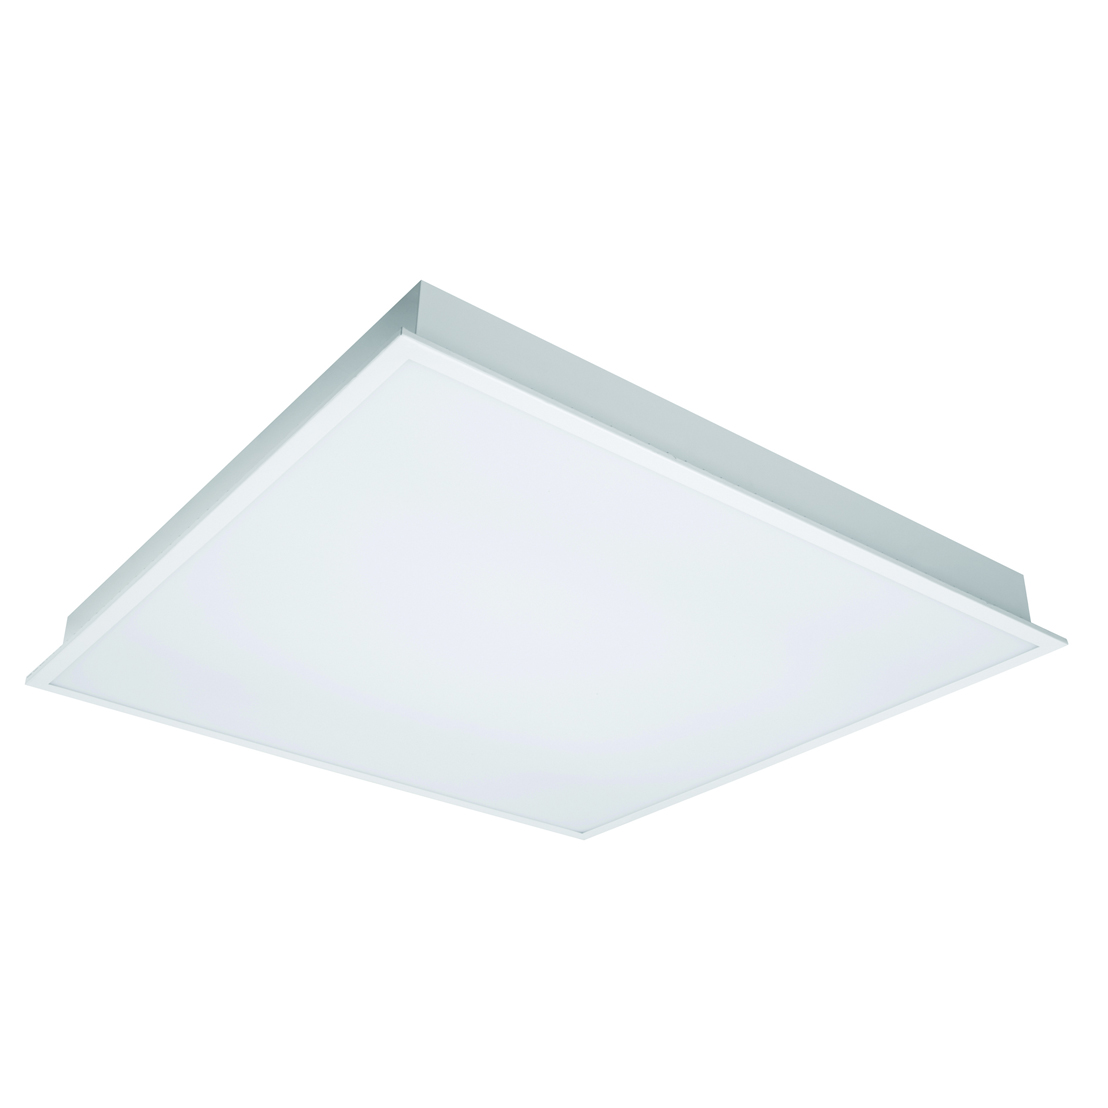 24PNL45/840/LED 80943 LED FLAT PANEL 2X4 45W 4000K DIMMABLE ProLED